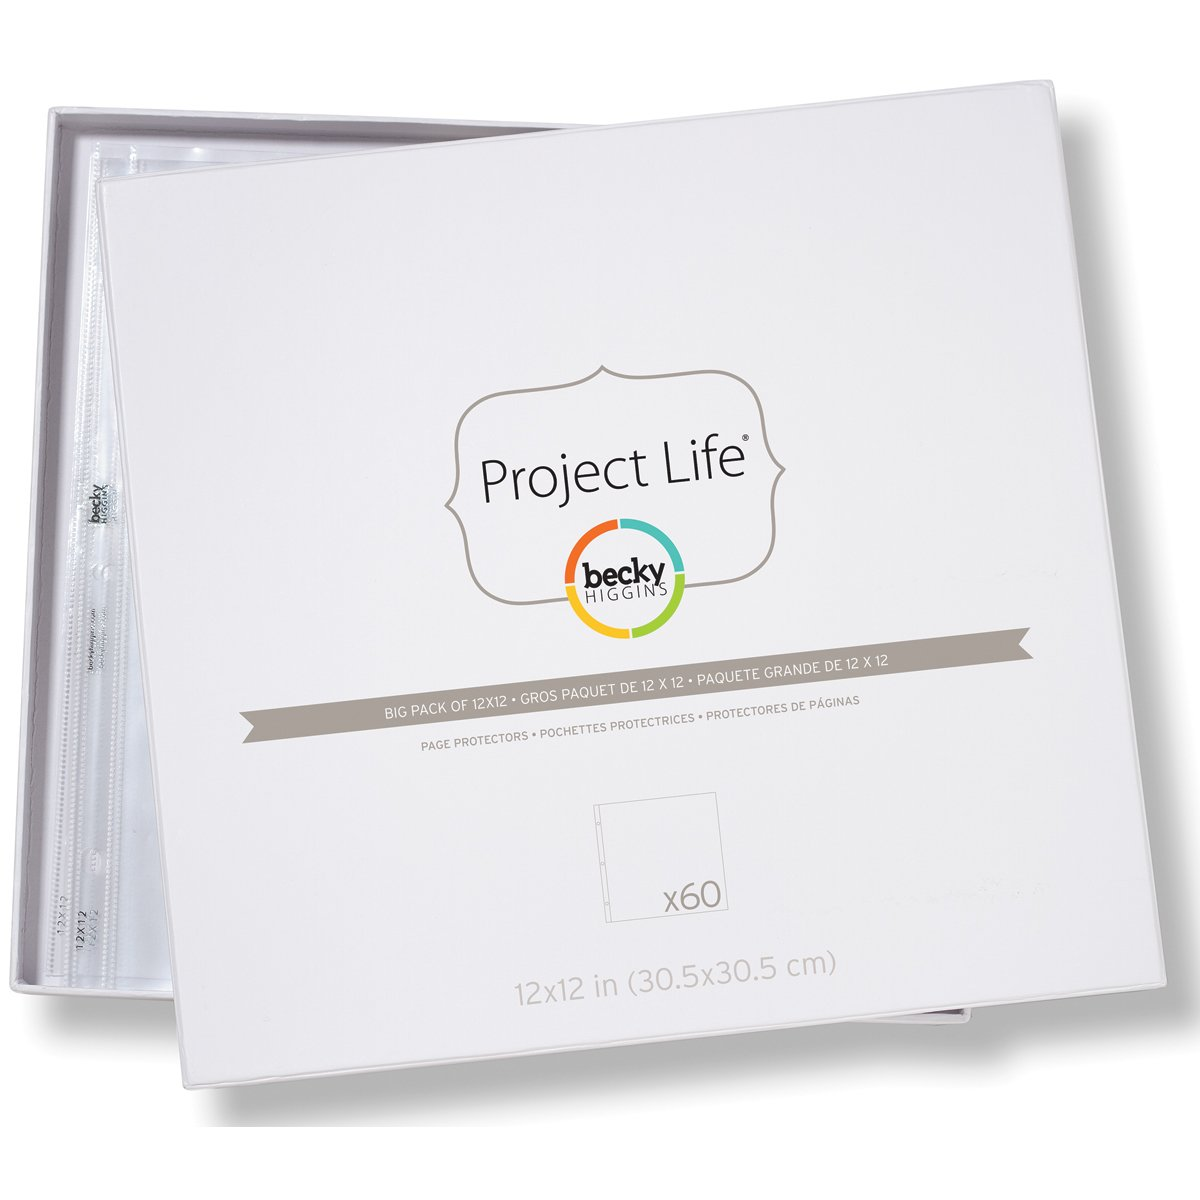 Becky Higgins Big Pack of 12x12 Page Protectors (60 Pages) AMC380003